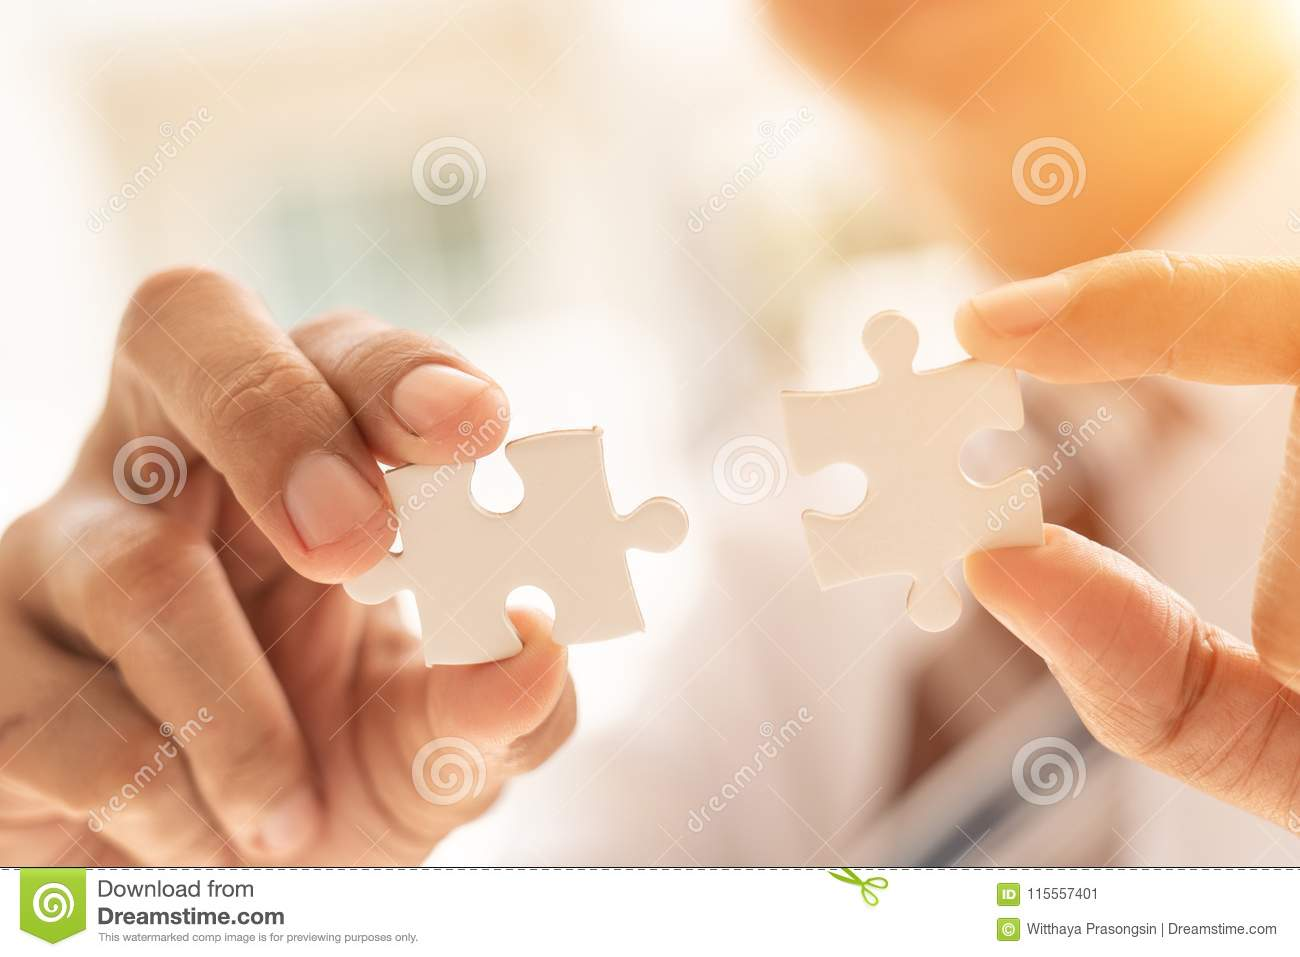 B Stock Solutions closeup hand of connecting jigsaw puzzle with sunlight